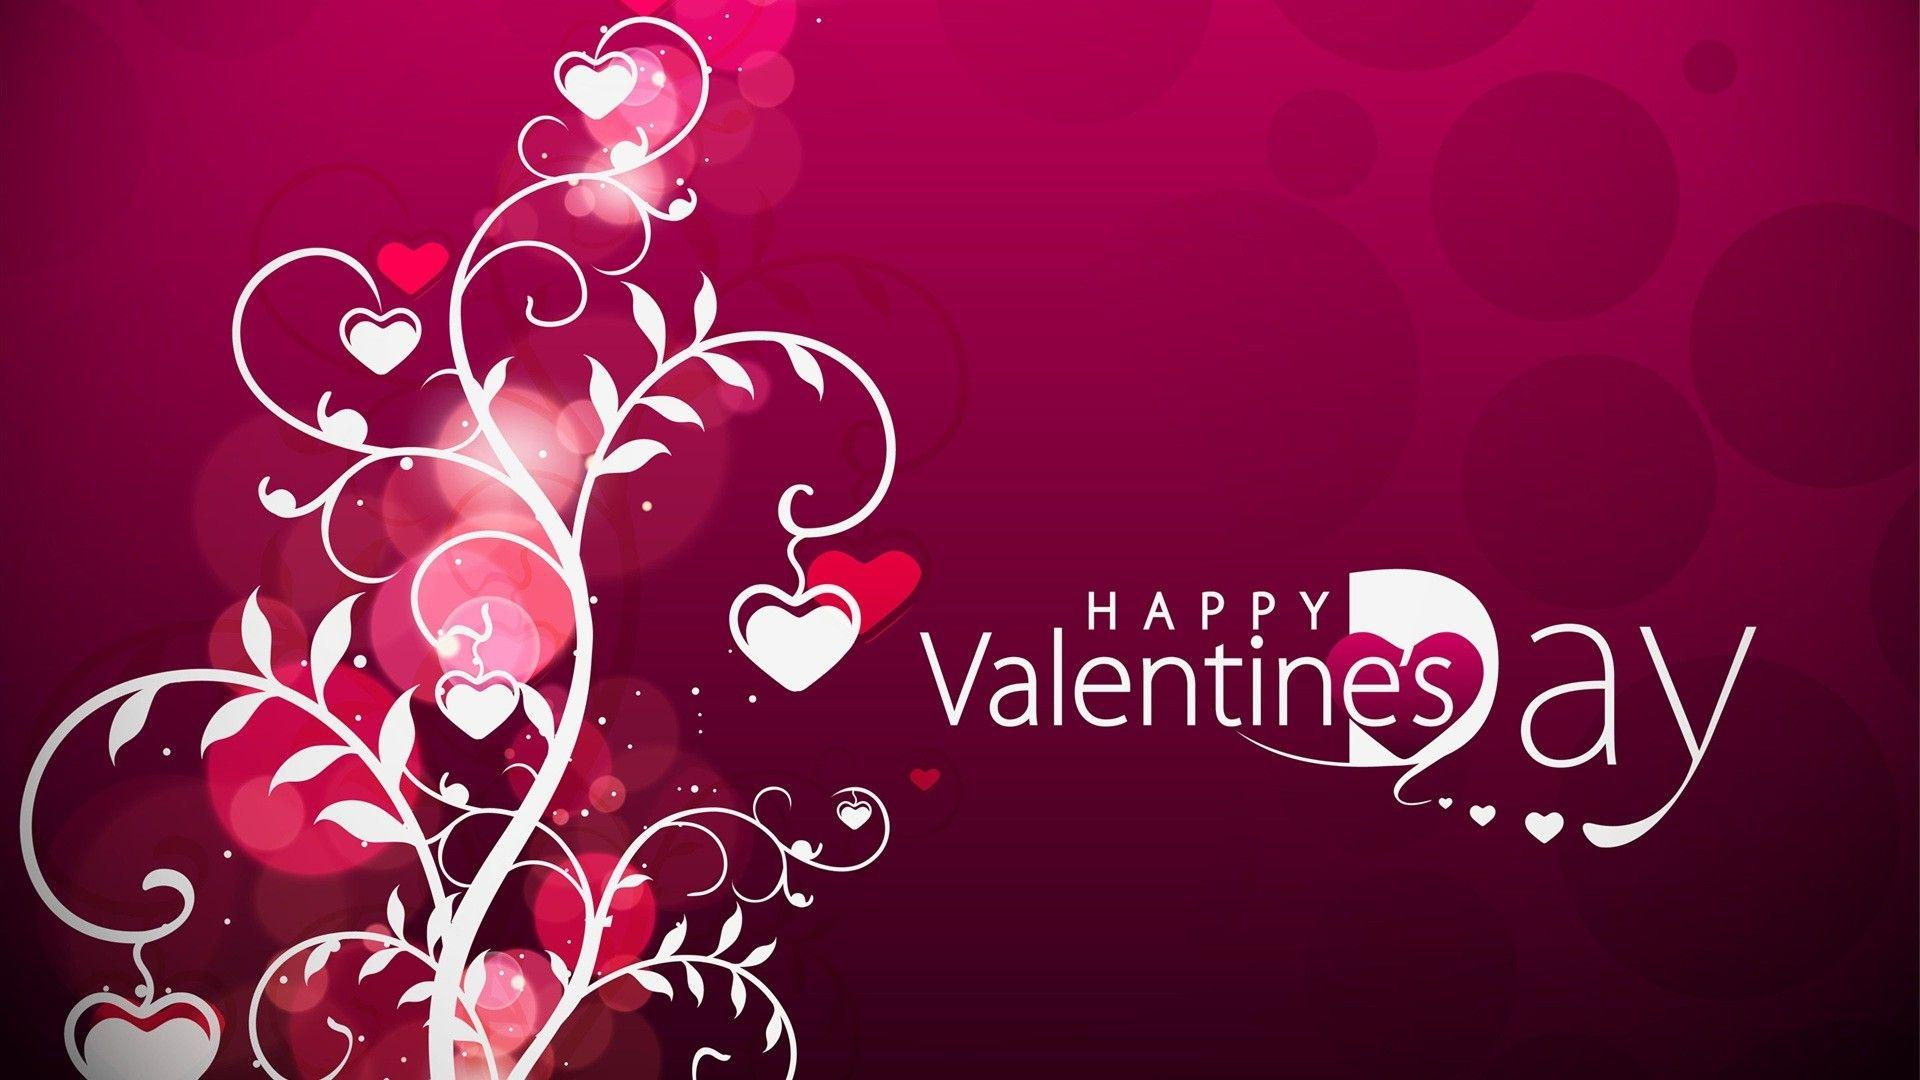 40 Valentines Day Wallpapers for the Month of Love